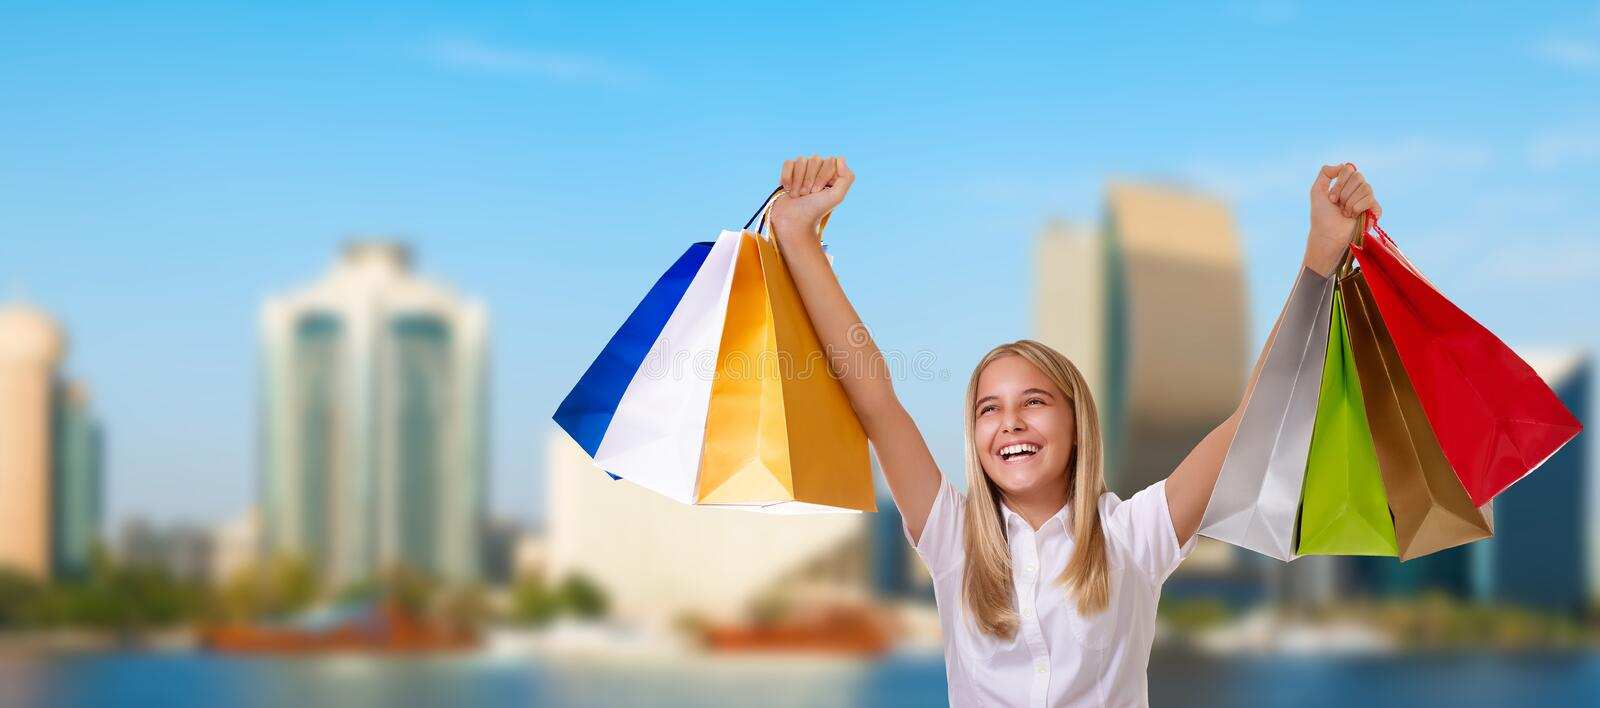 Shopping woman holding shopping bags above her head smiling during sale shopping over Dubai city background royalty free stock image